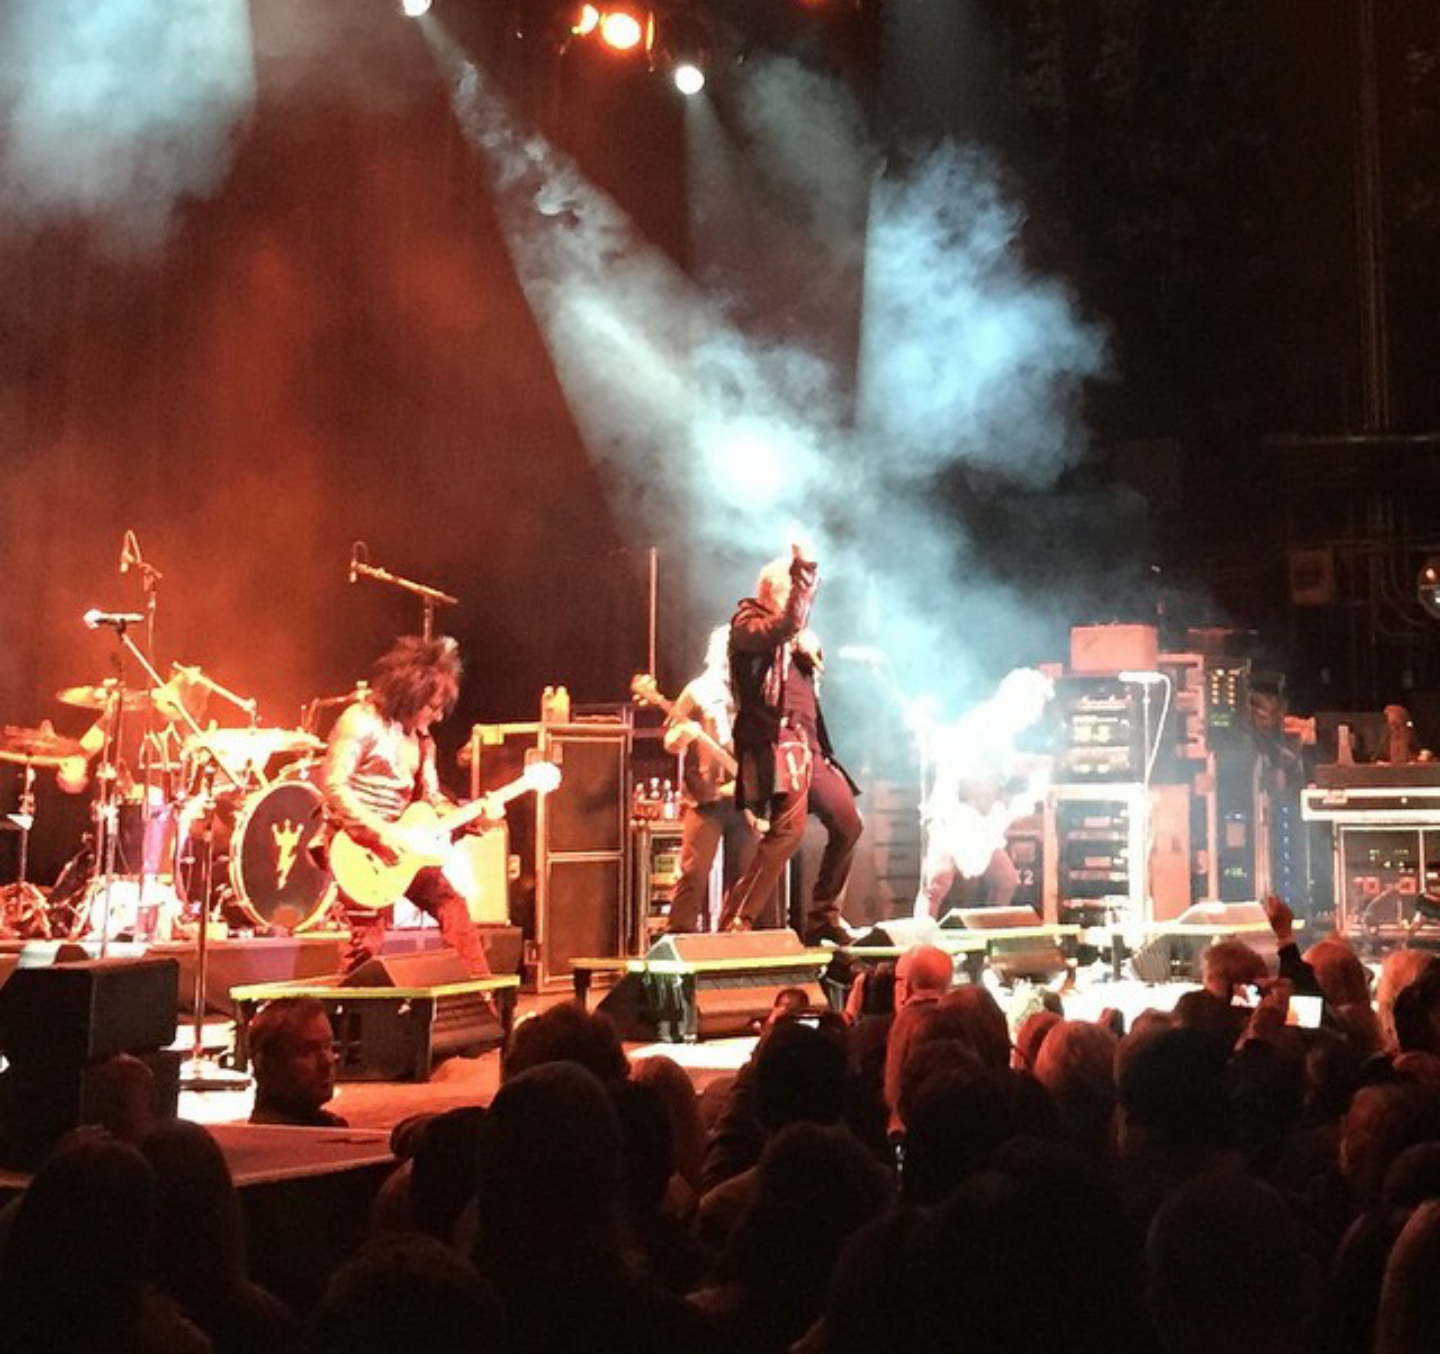 greg C (at Billy's feet) photographing Billy Idol at The Wellmont Theatre in Montclair, NJ- January 29, 2015. Photo by The Wellmont Theatre.